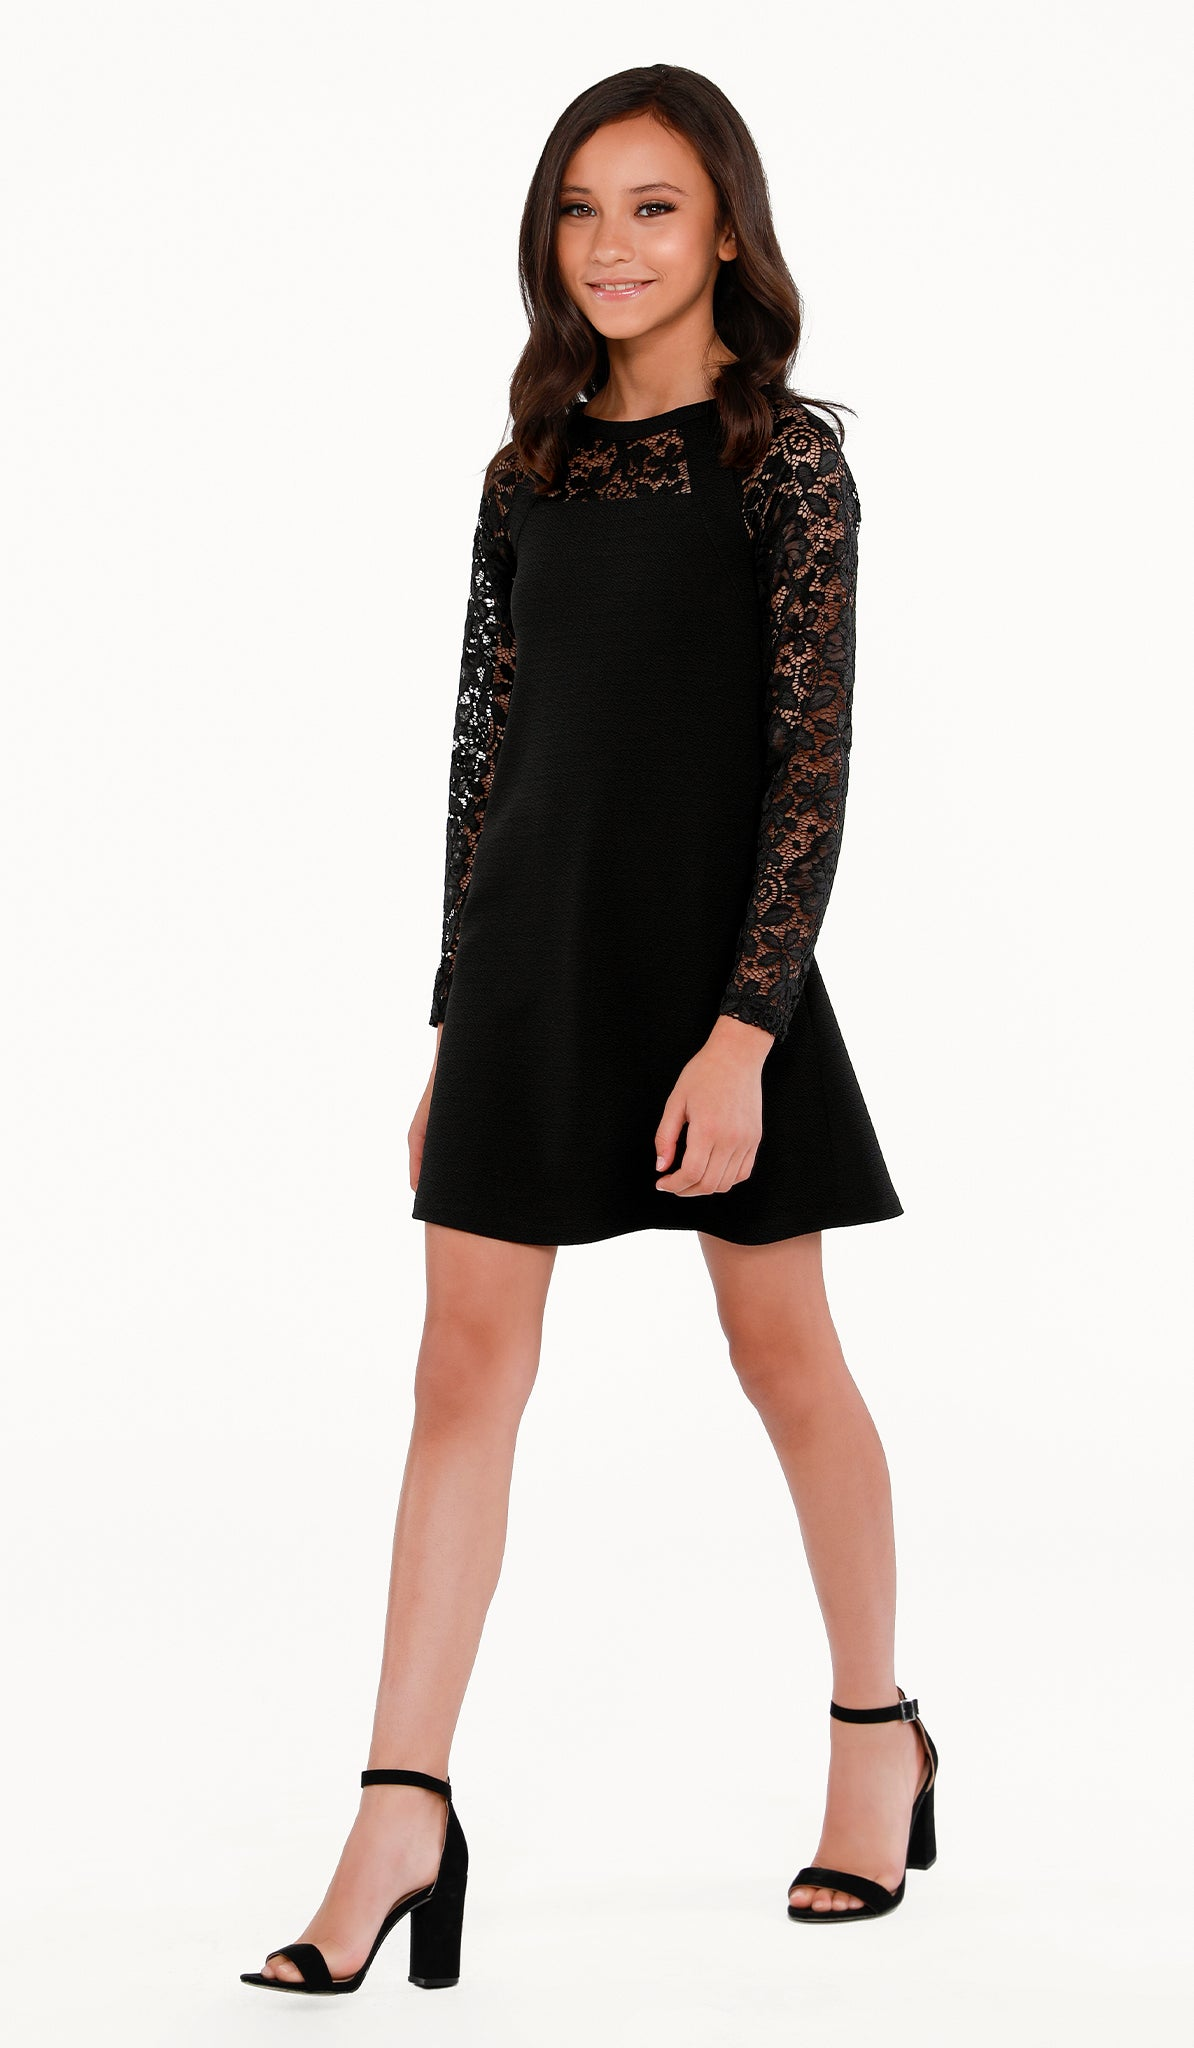 The Sally Miller Alexis Dress | Black textured stretch knit shift dress with long lace sleeve